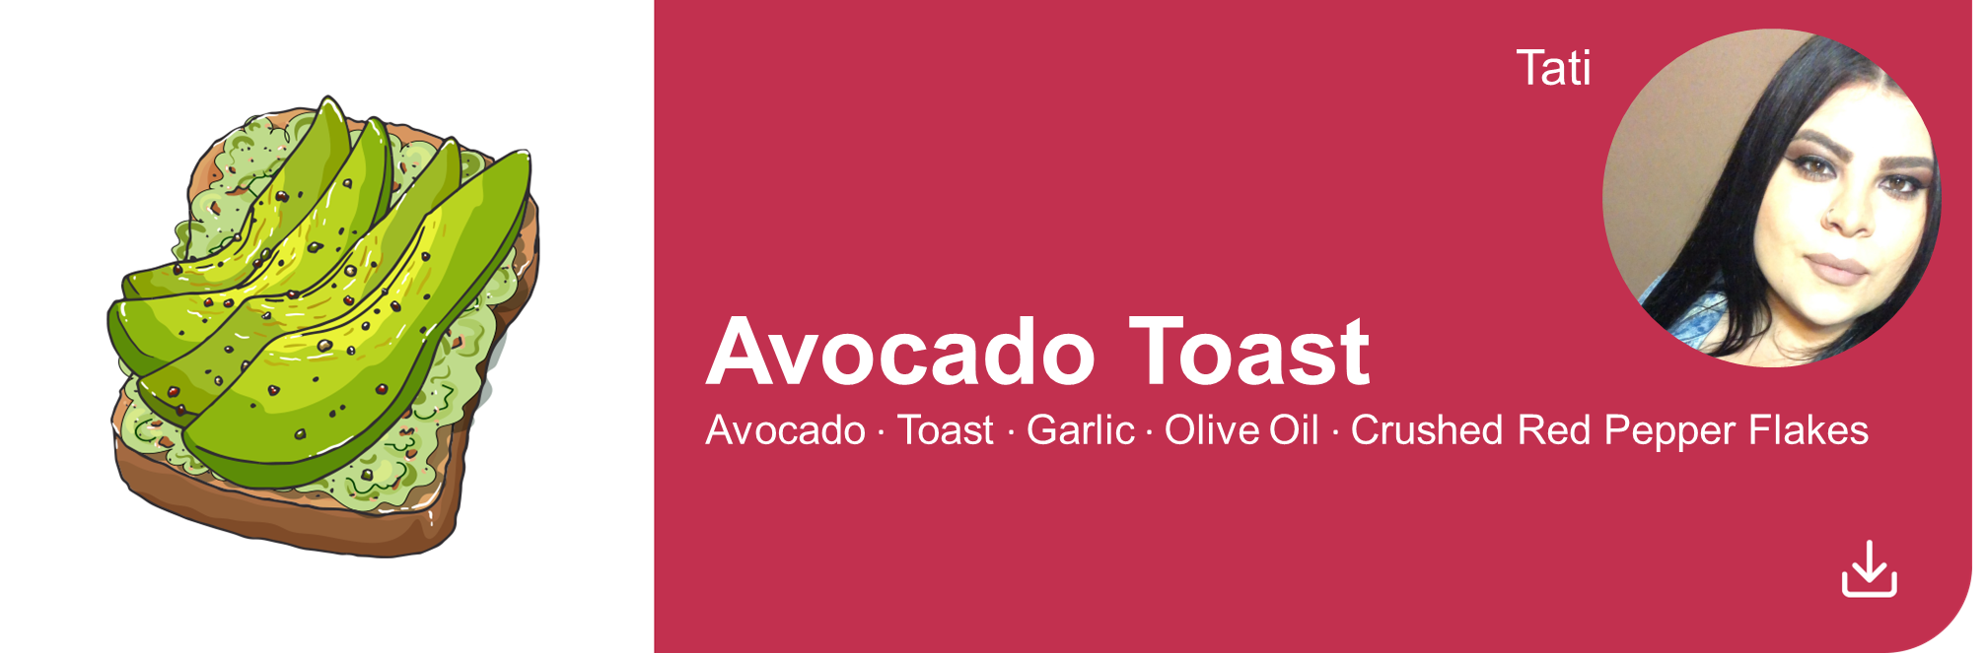 Creative Marketing Concepts_QuarantineAndChill_Comfort Food Edition_Avocado on Toast_Tati new